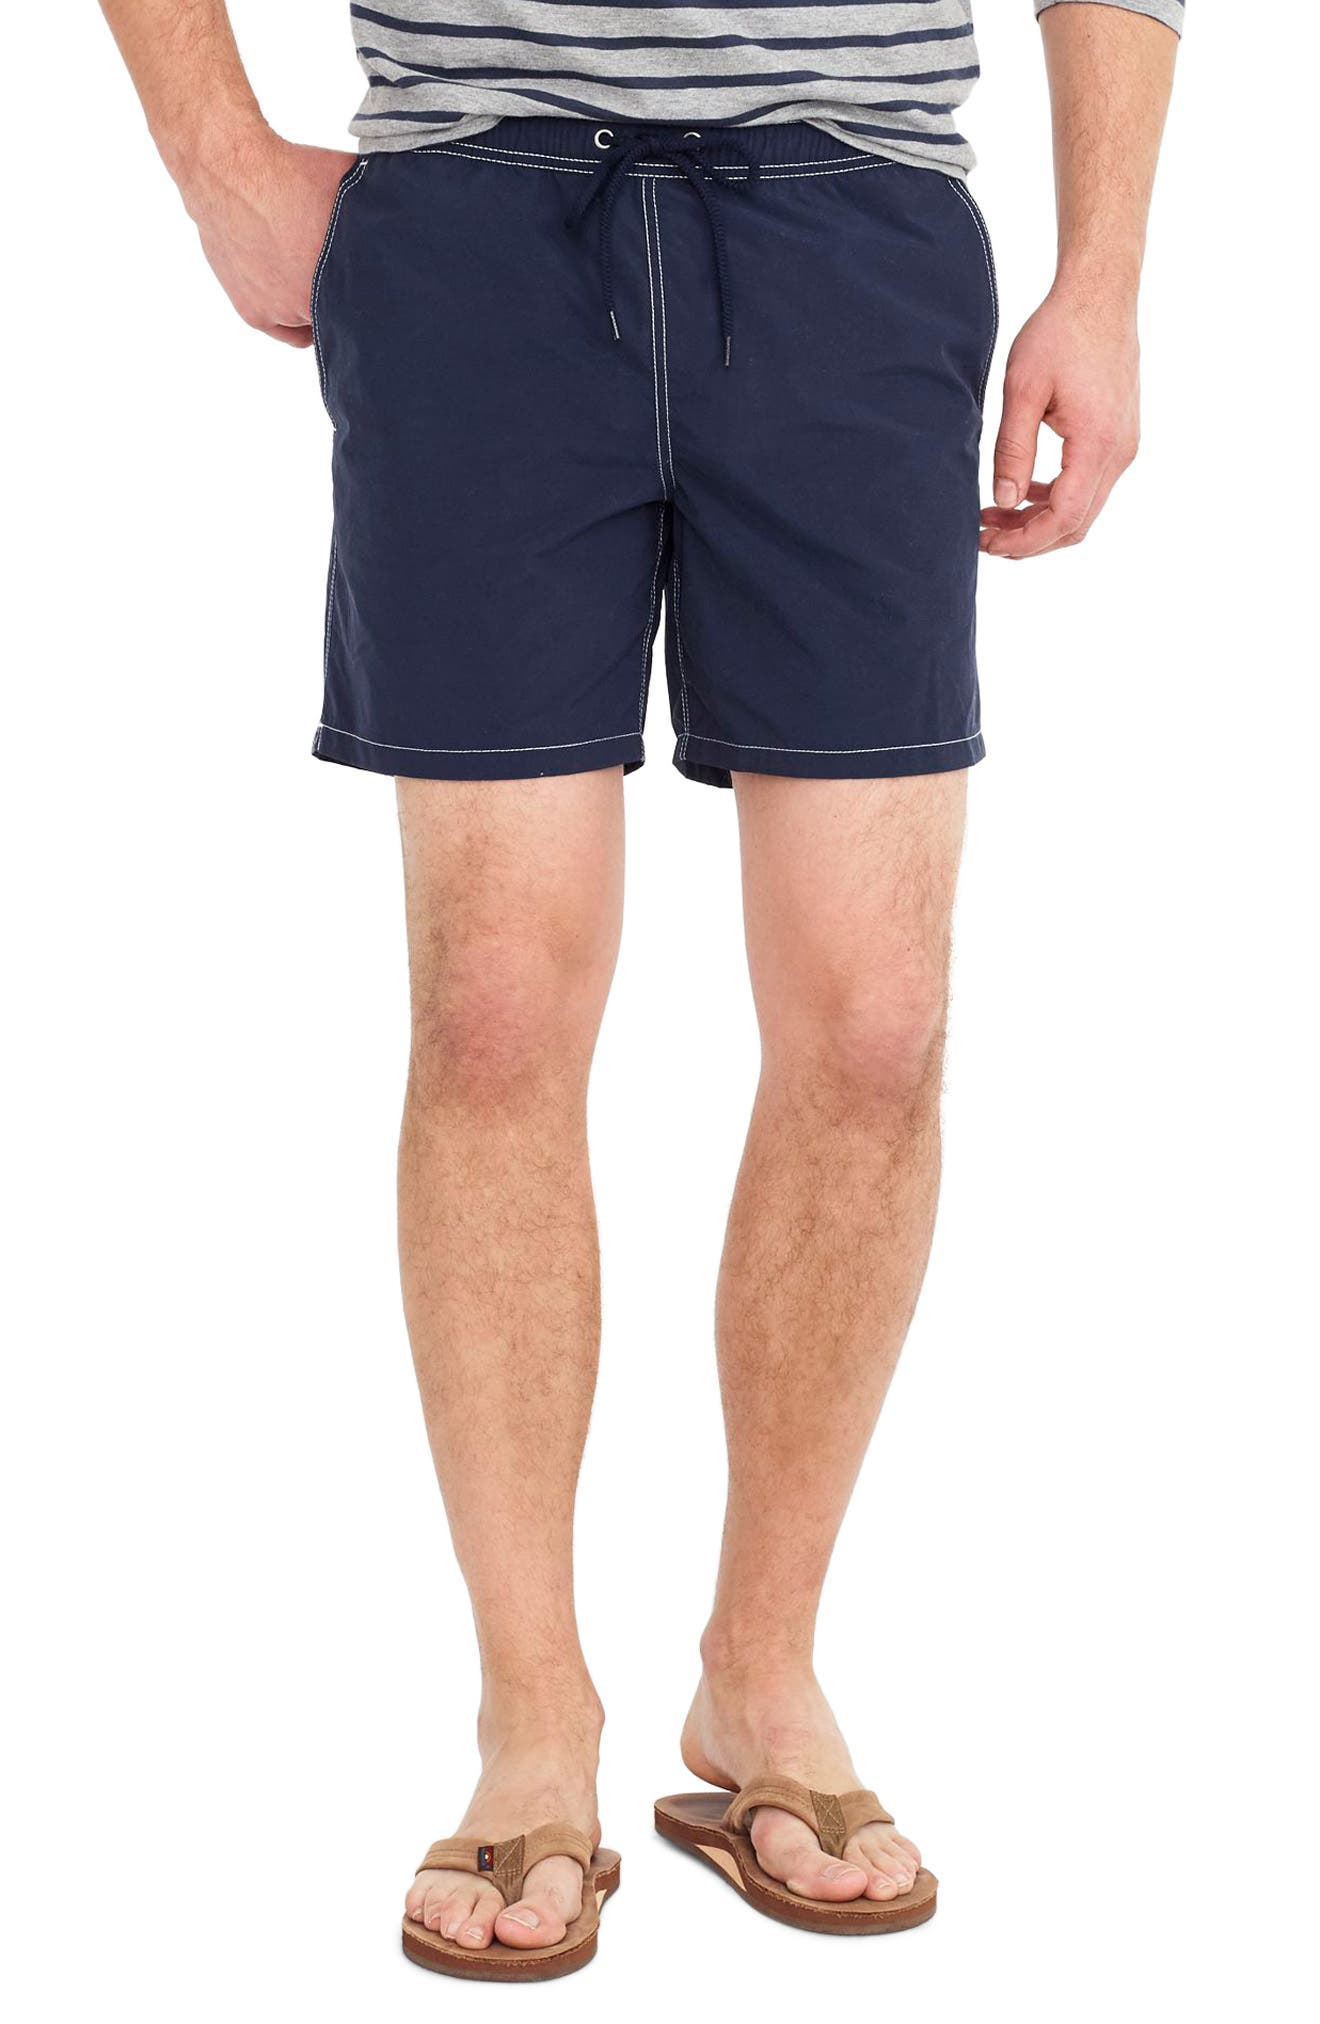 J.Crew Solid Swim Trunks